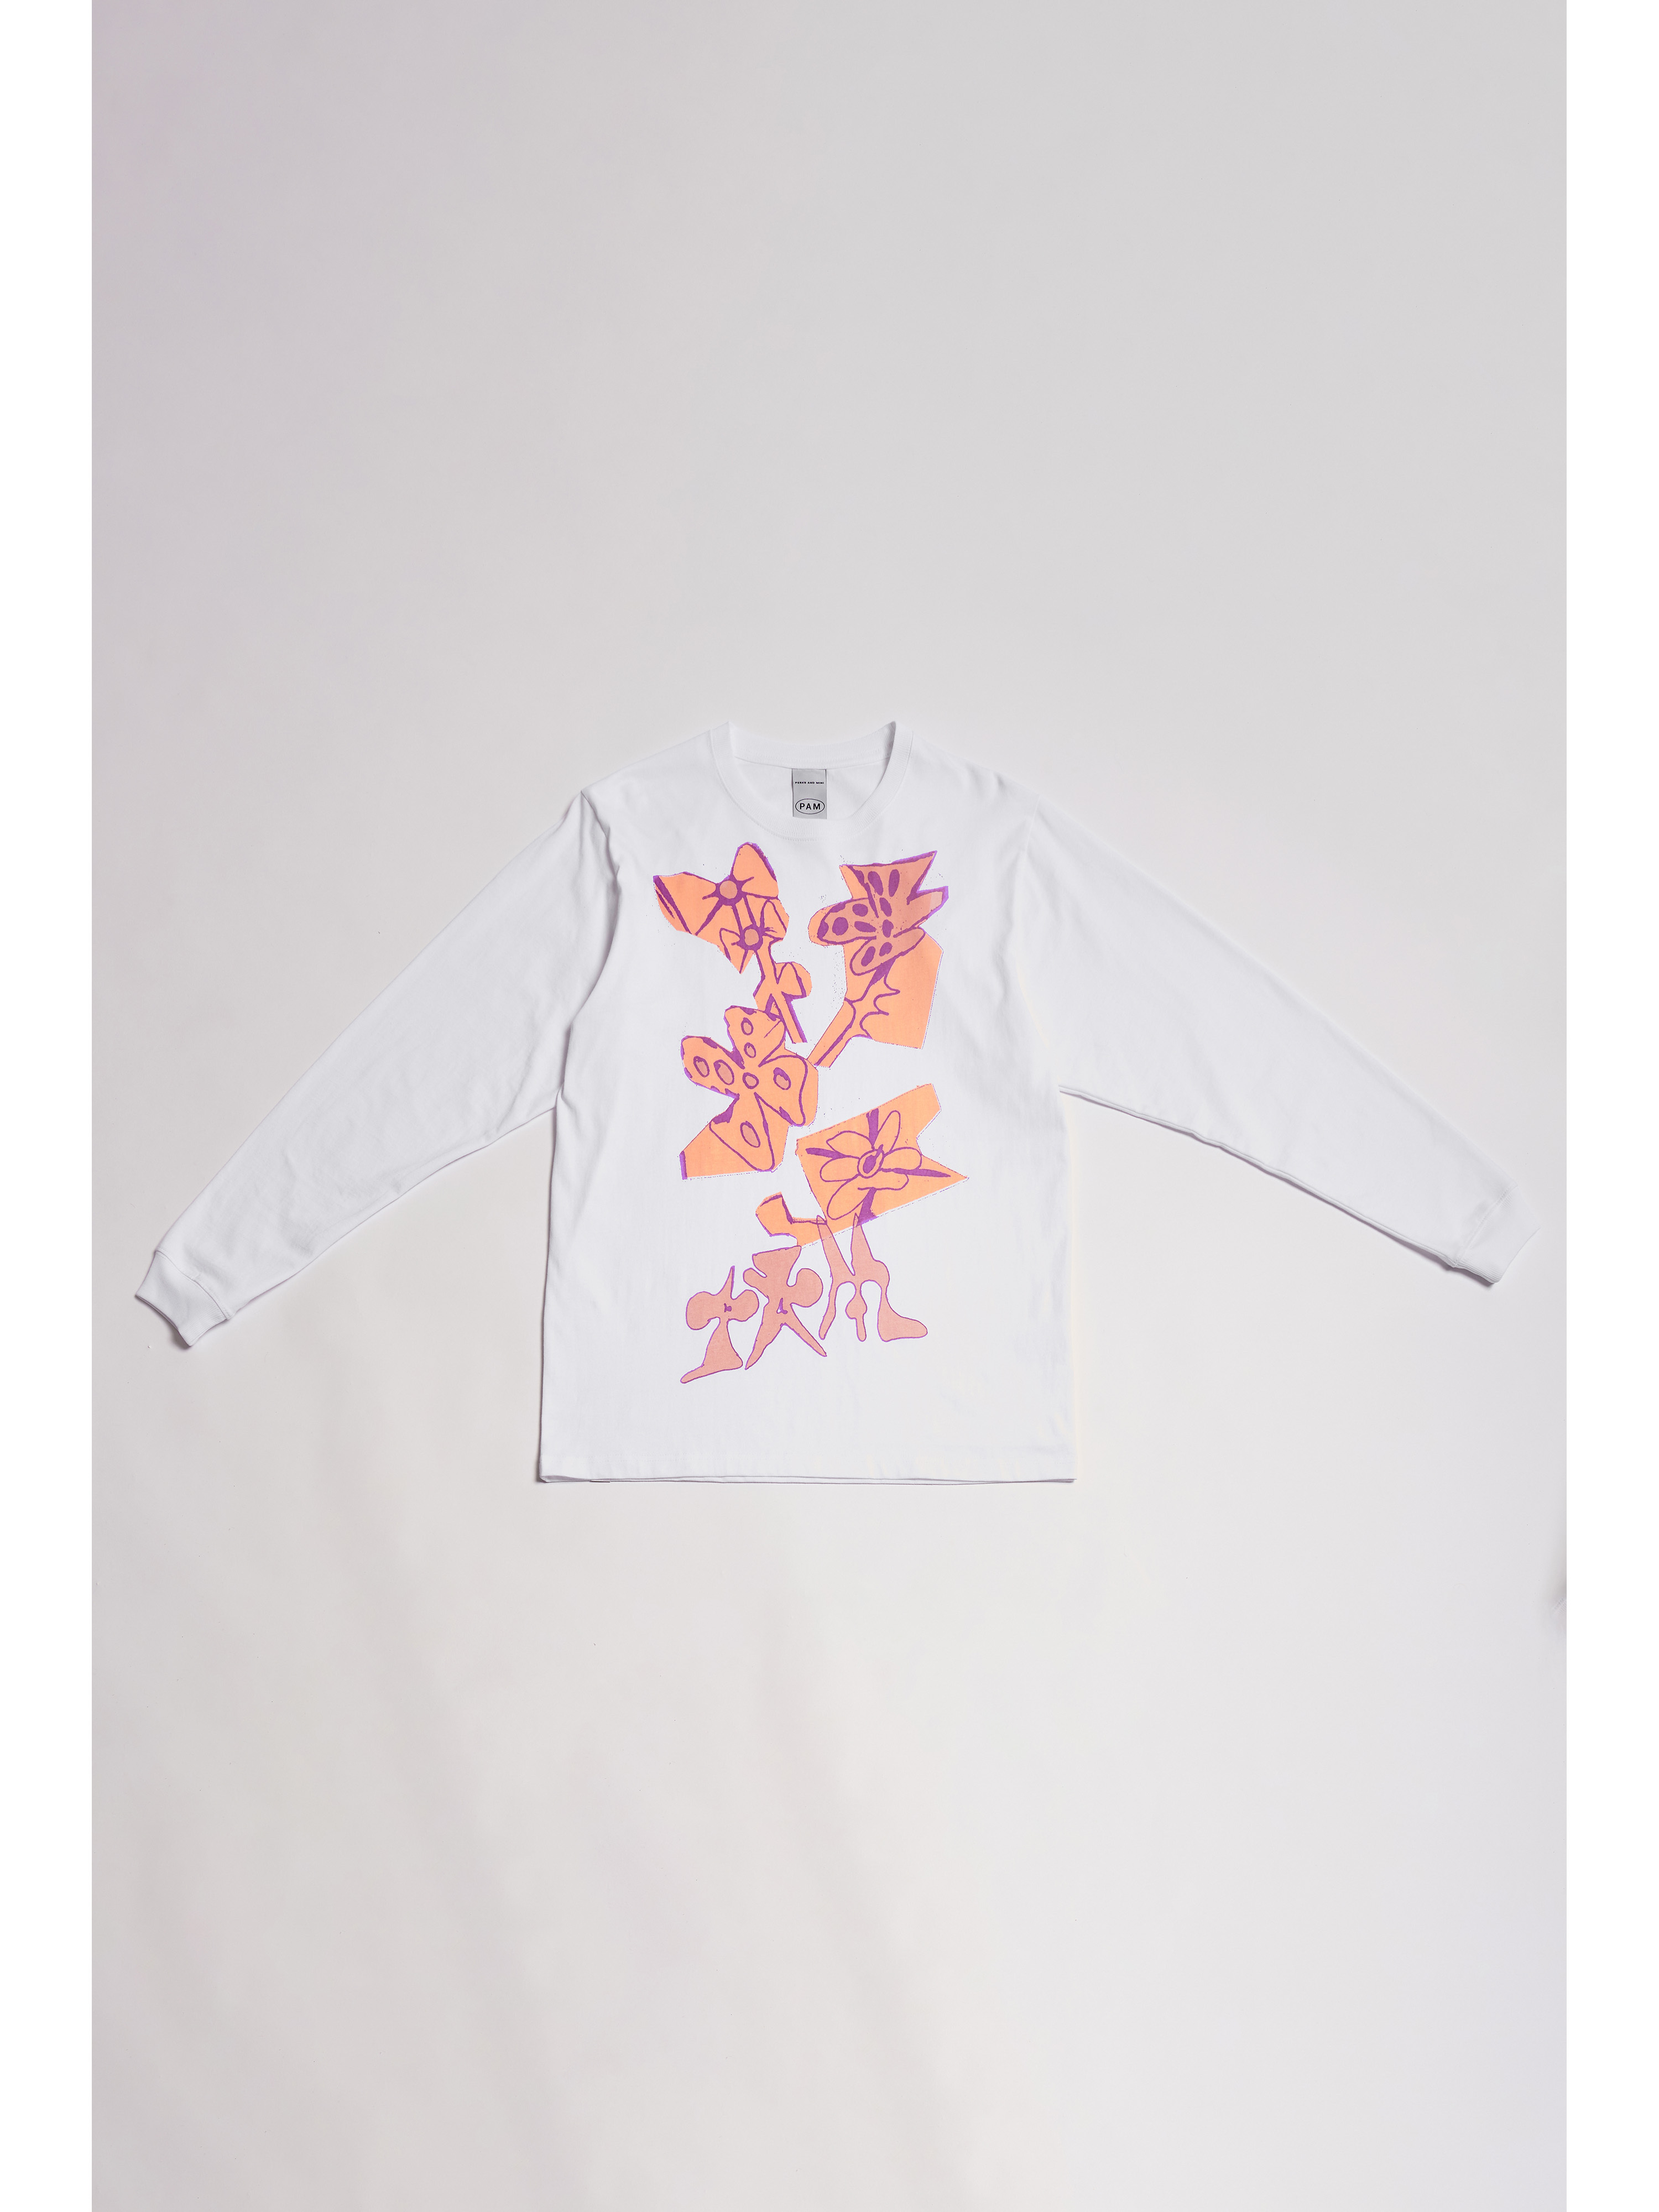 P.A.M. (Perks And Mini) /   SPACE BLOSSOMS PRINTED LS TEE (GRAPHIC BY LEOMI SADLER)